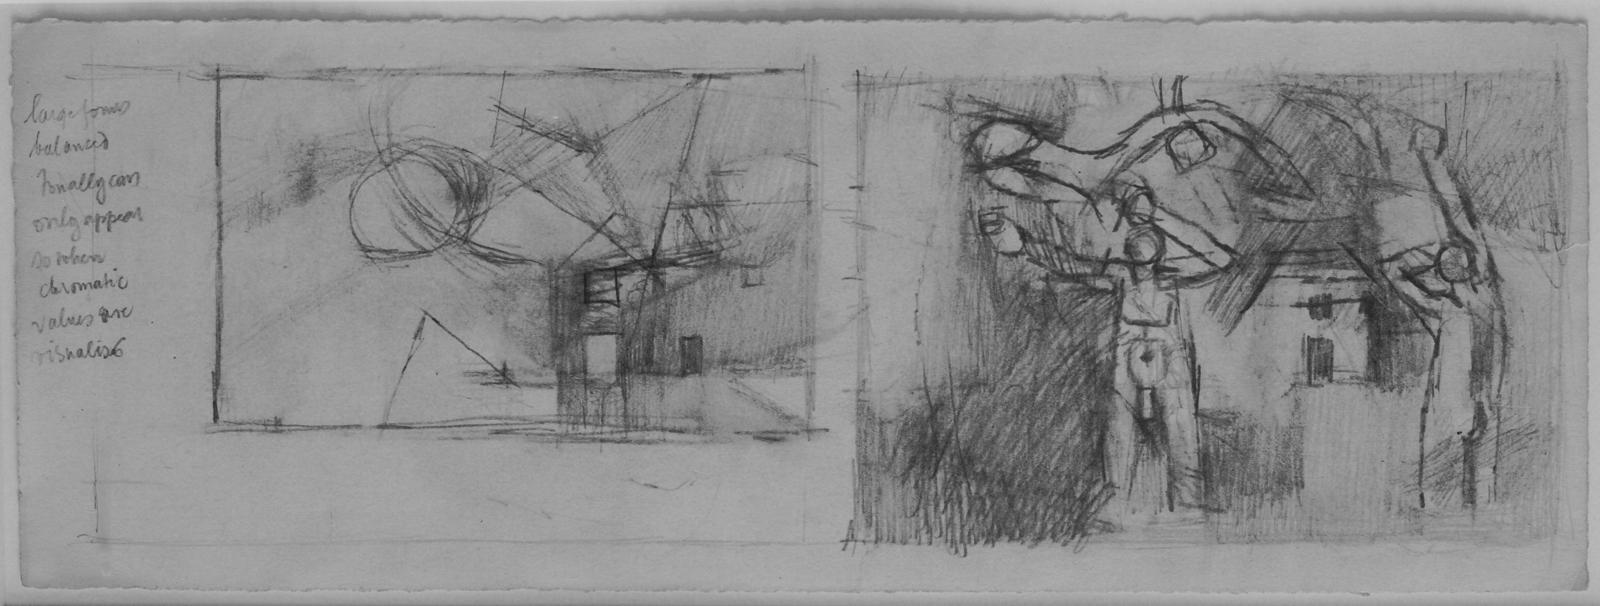 Keith Vaughan 1912-1977 Study for Fruit Picker 1947 Pencil on paper 12.7x35cm